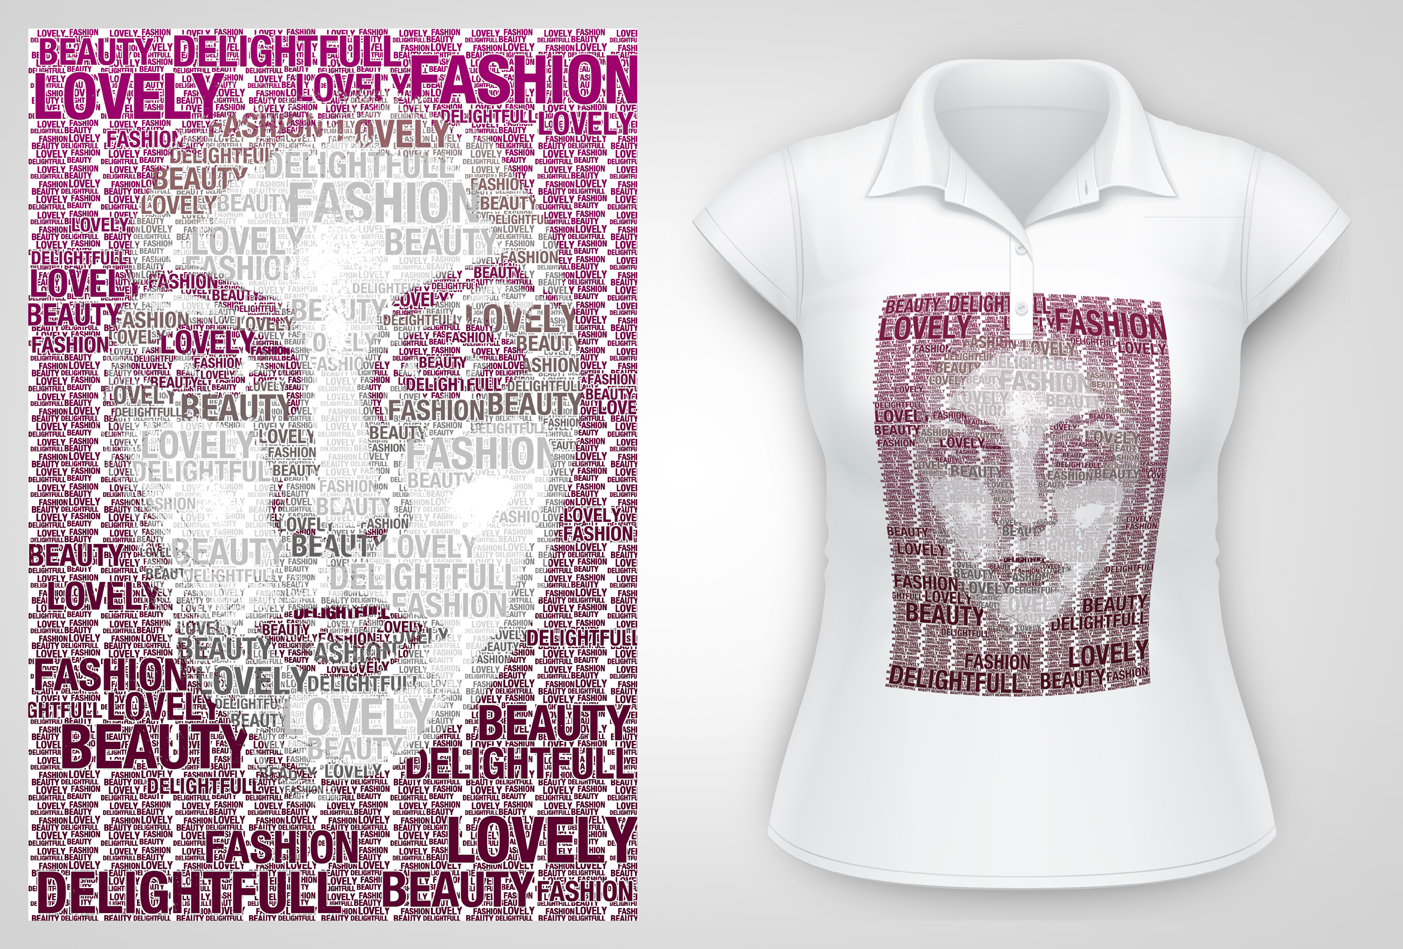 Design your own t shirt with a typography portrait tutzor - How to design your own shirt at home ...